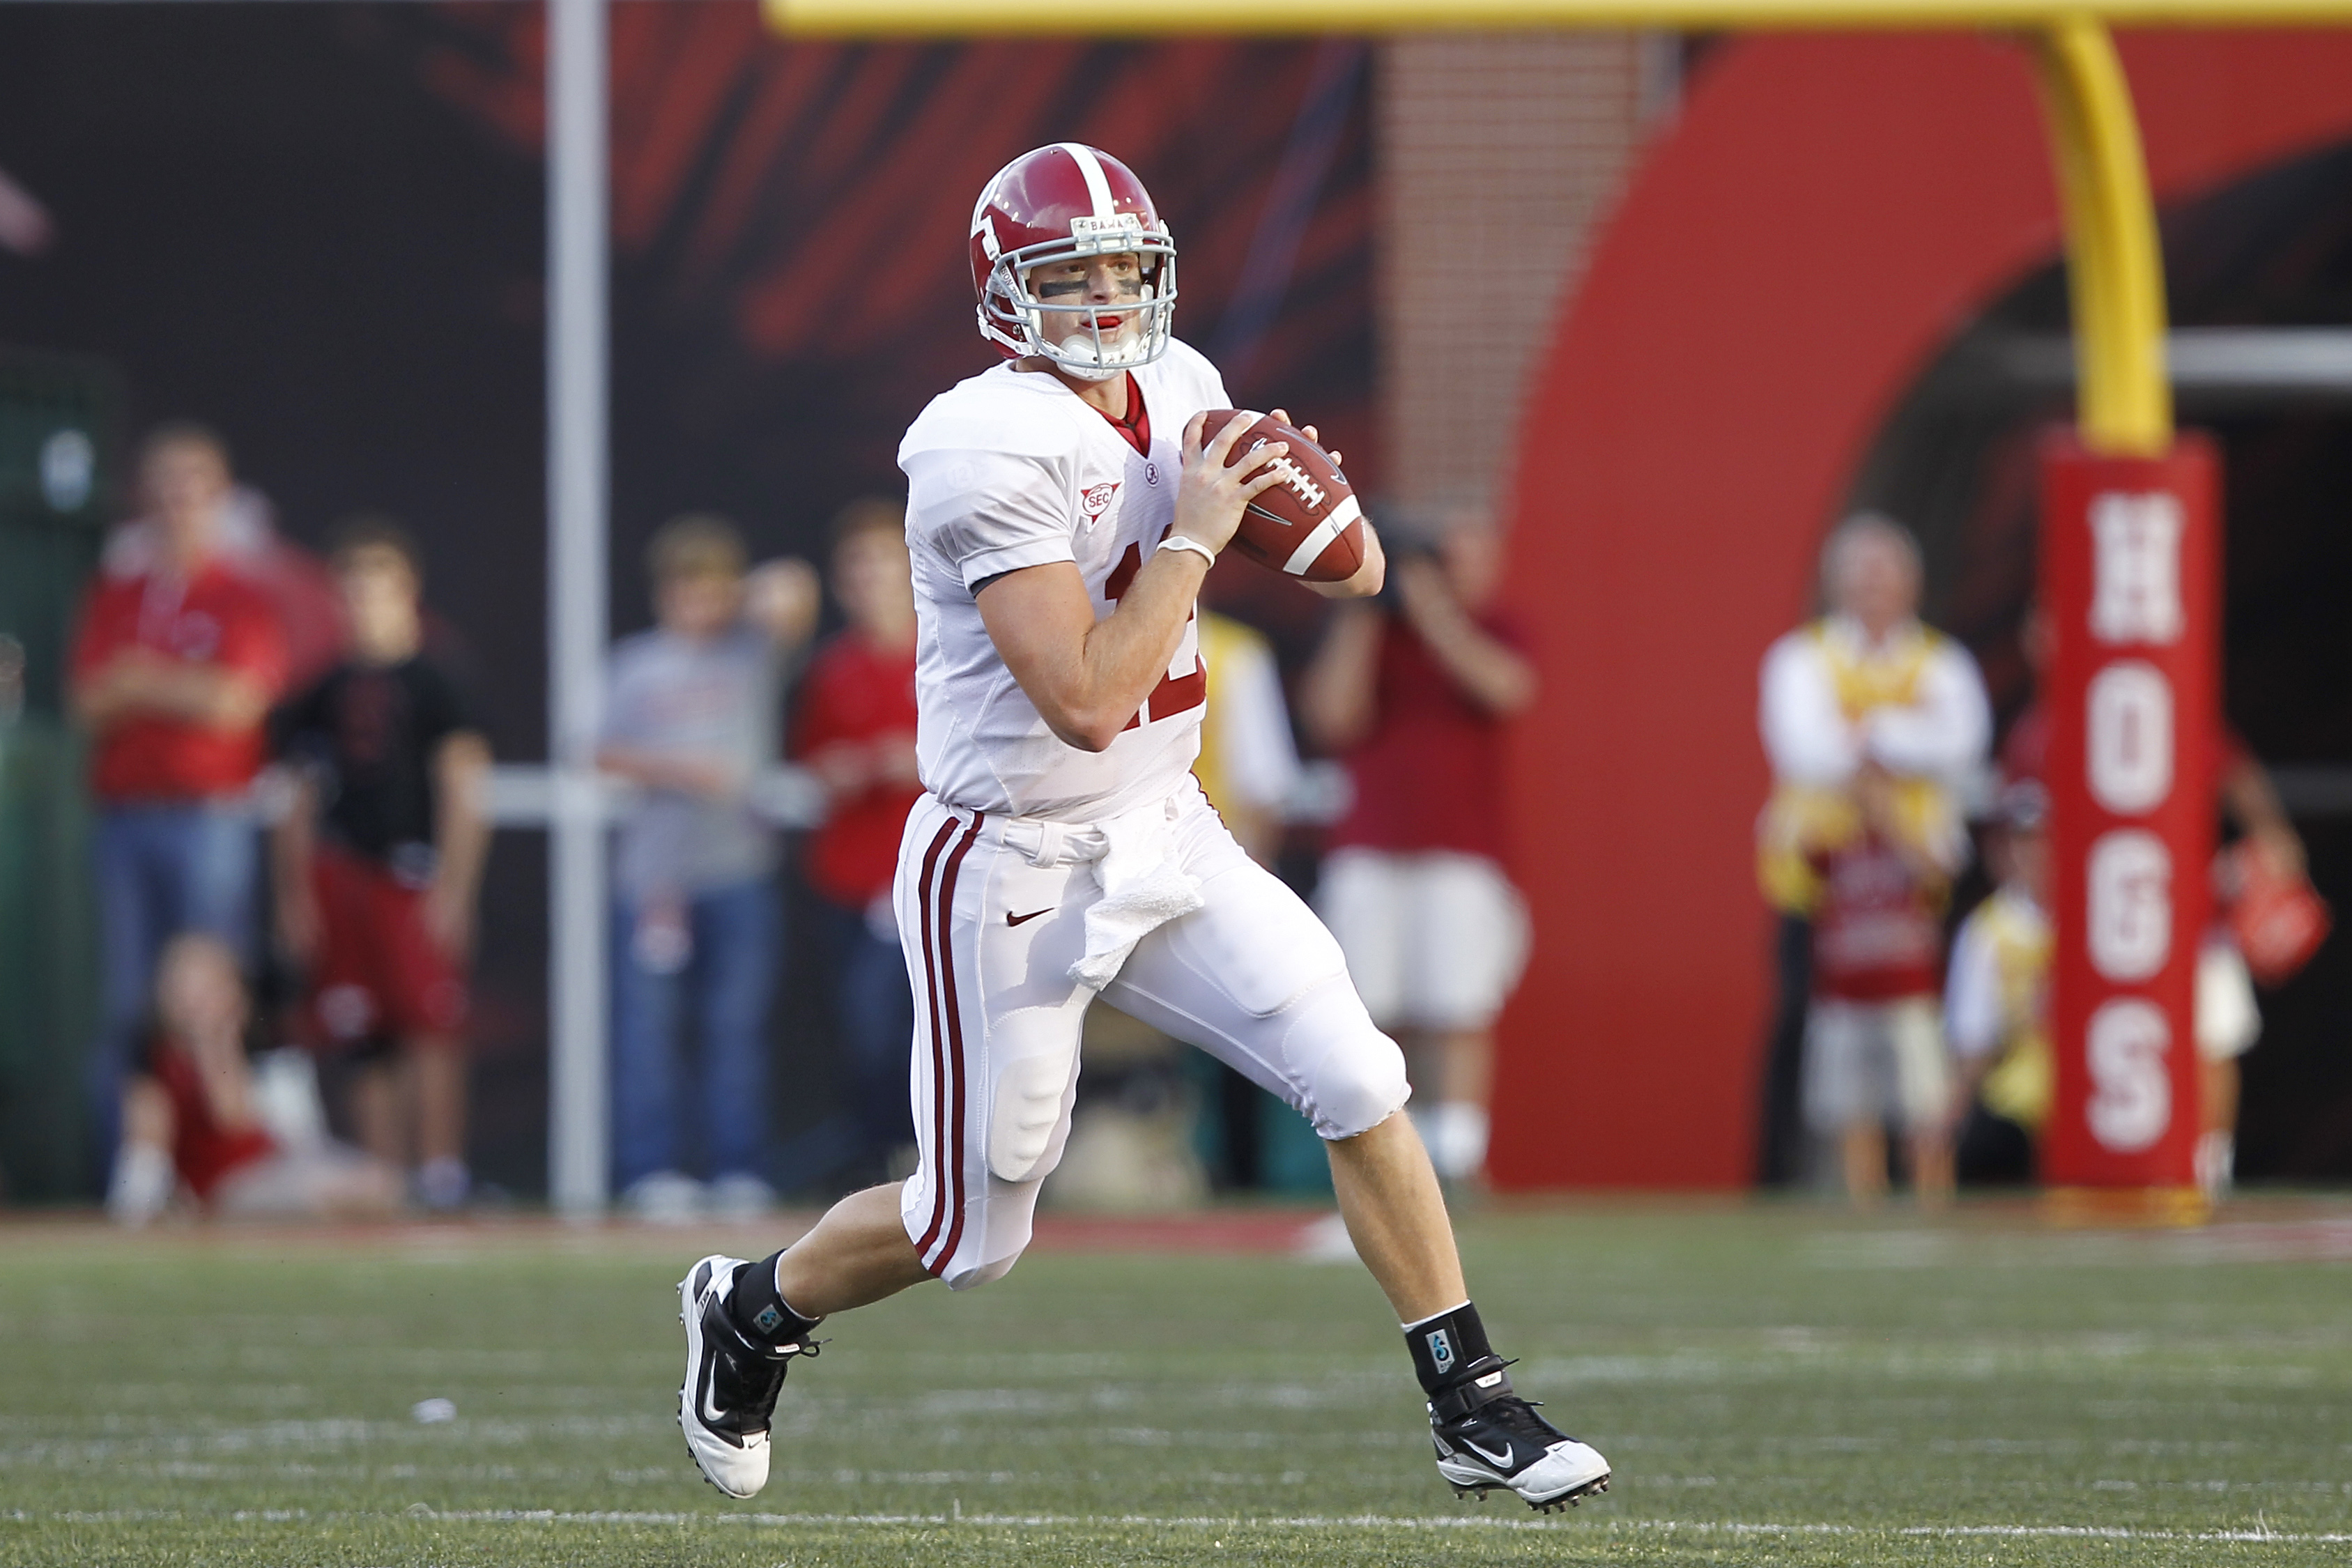 FAYETTEVILLE - SEPTEMBER 25: Greg McElroy #12 of the Alabama Crimson Tide looks to pass against the Arkansas Razorbacks at Donald W. Reynolds Razorback Stadium on September 25, 2010 in Fayetteville, Arkansas. Alabama won 24-20. (Photo by Joe Robbins/Getty